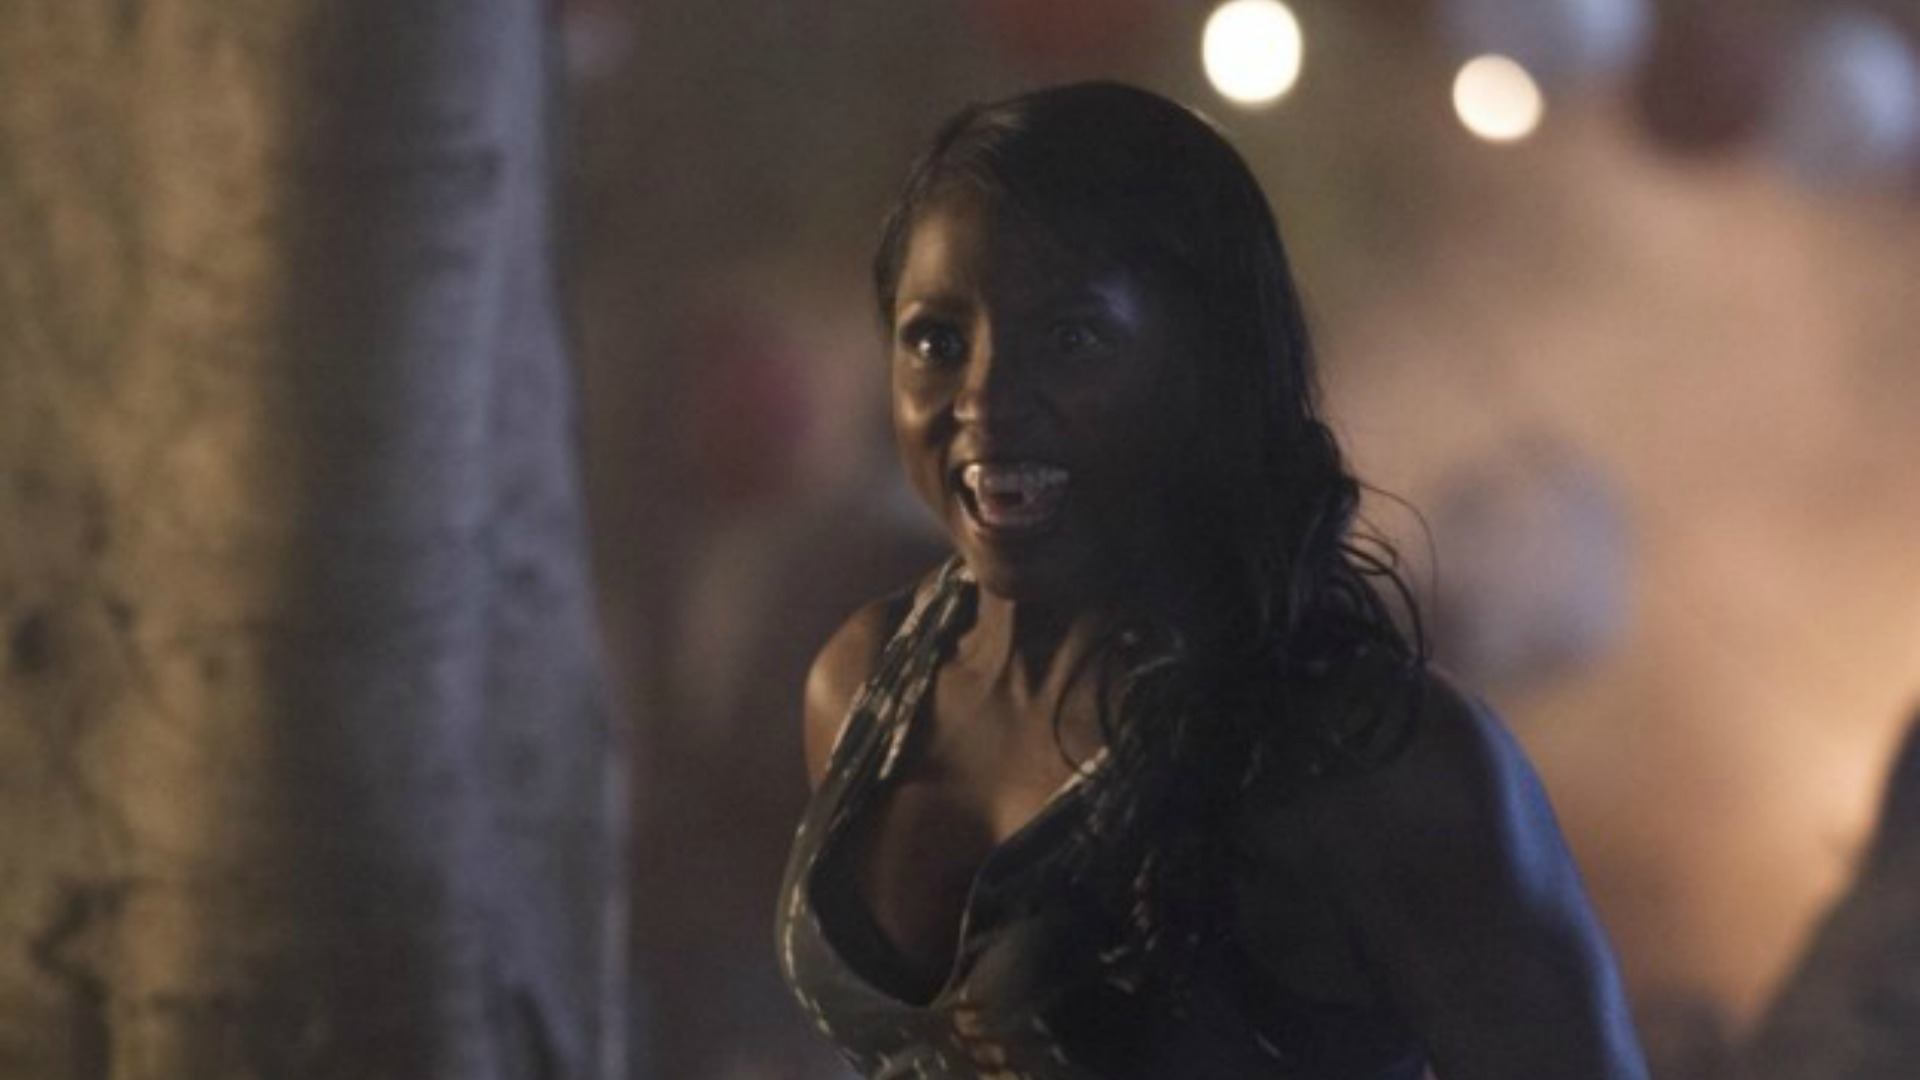 True Blood Season 7 premieres with an unexpected death